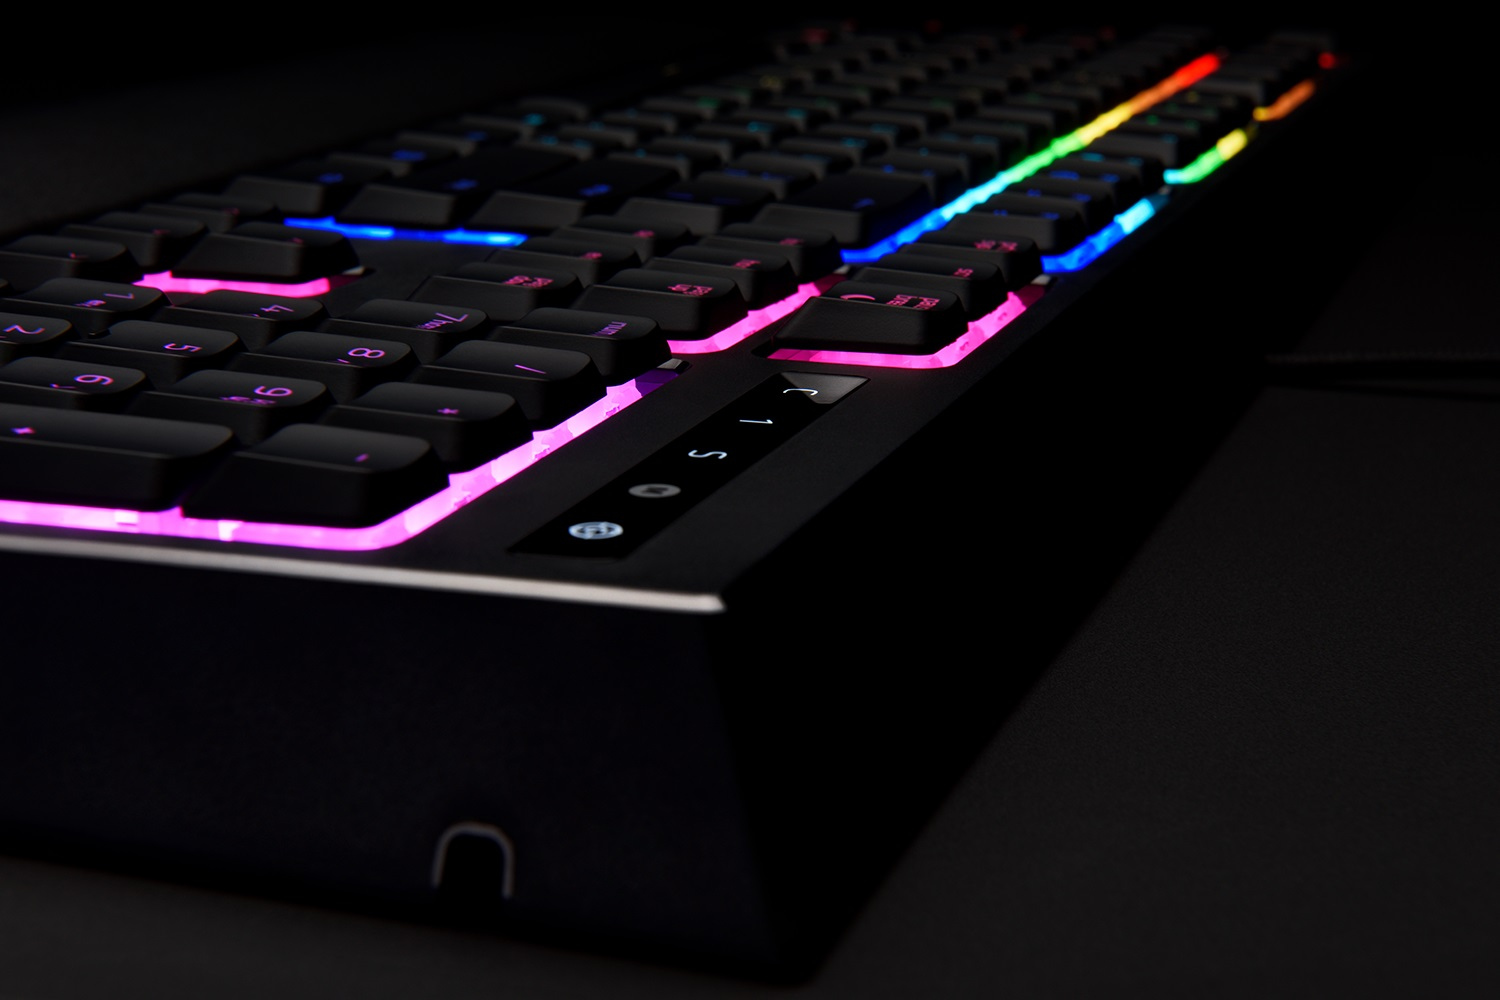 Razer's new Ornata keyboard implants mechanical and membrane technologies under same hood